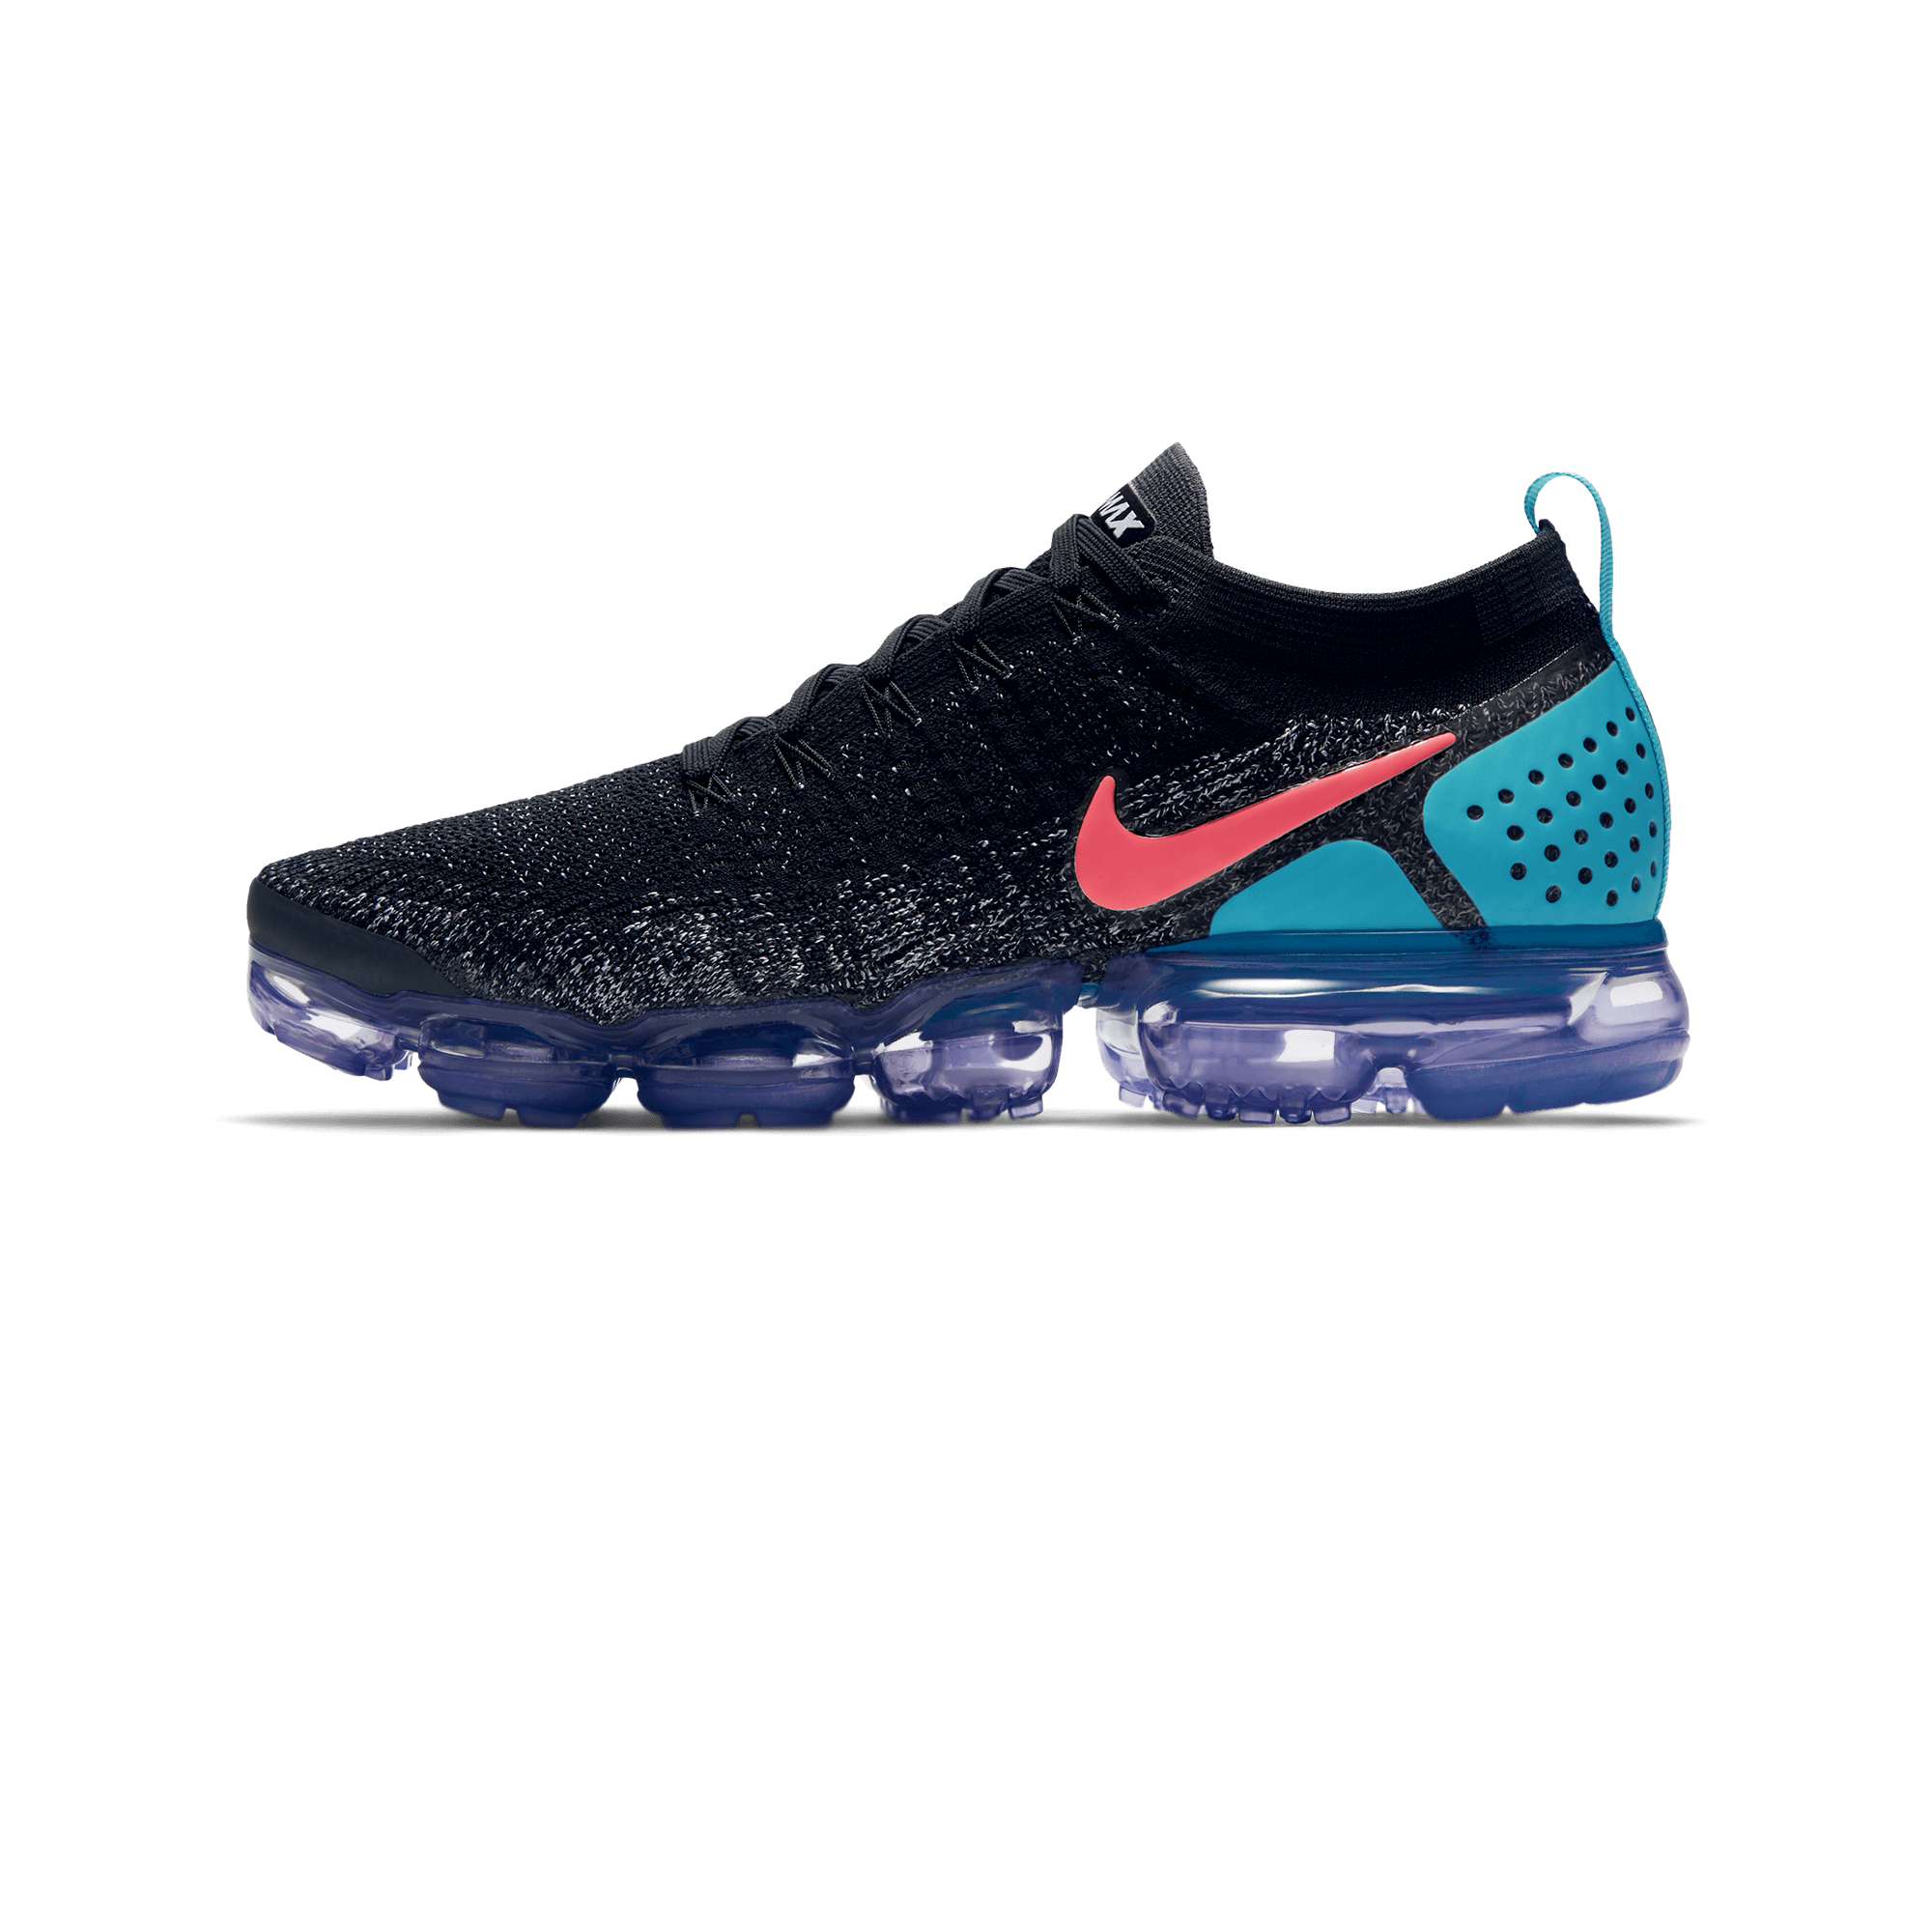 best service 0c02a 0edcf Nike Air Vapormax Flyknit 2 black / hot punch - Men | Holypopstore.com